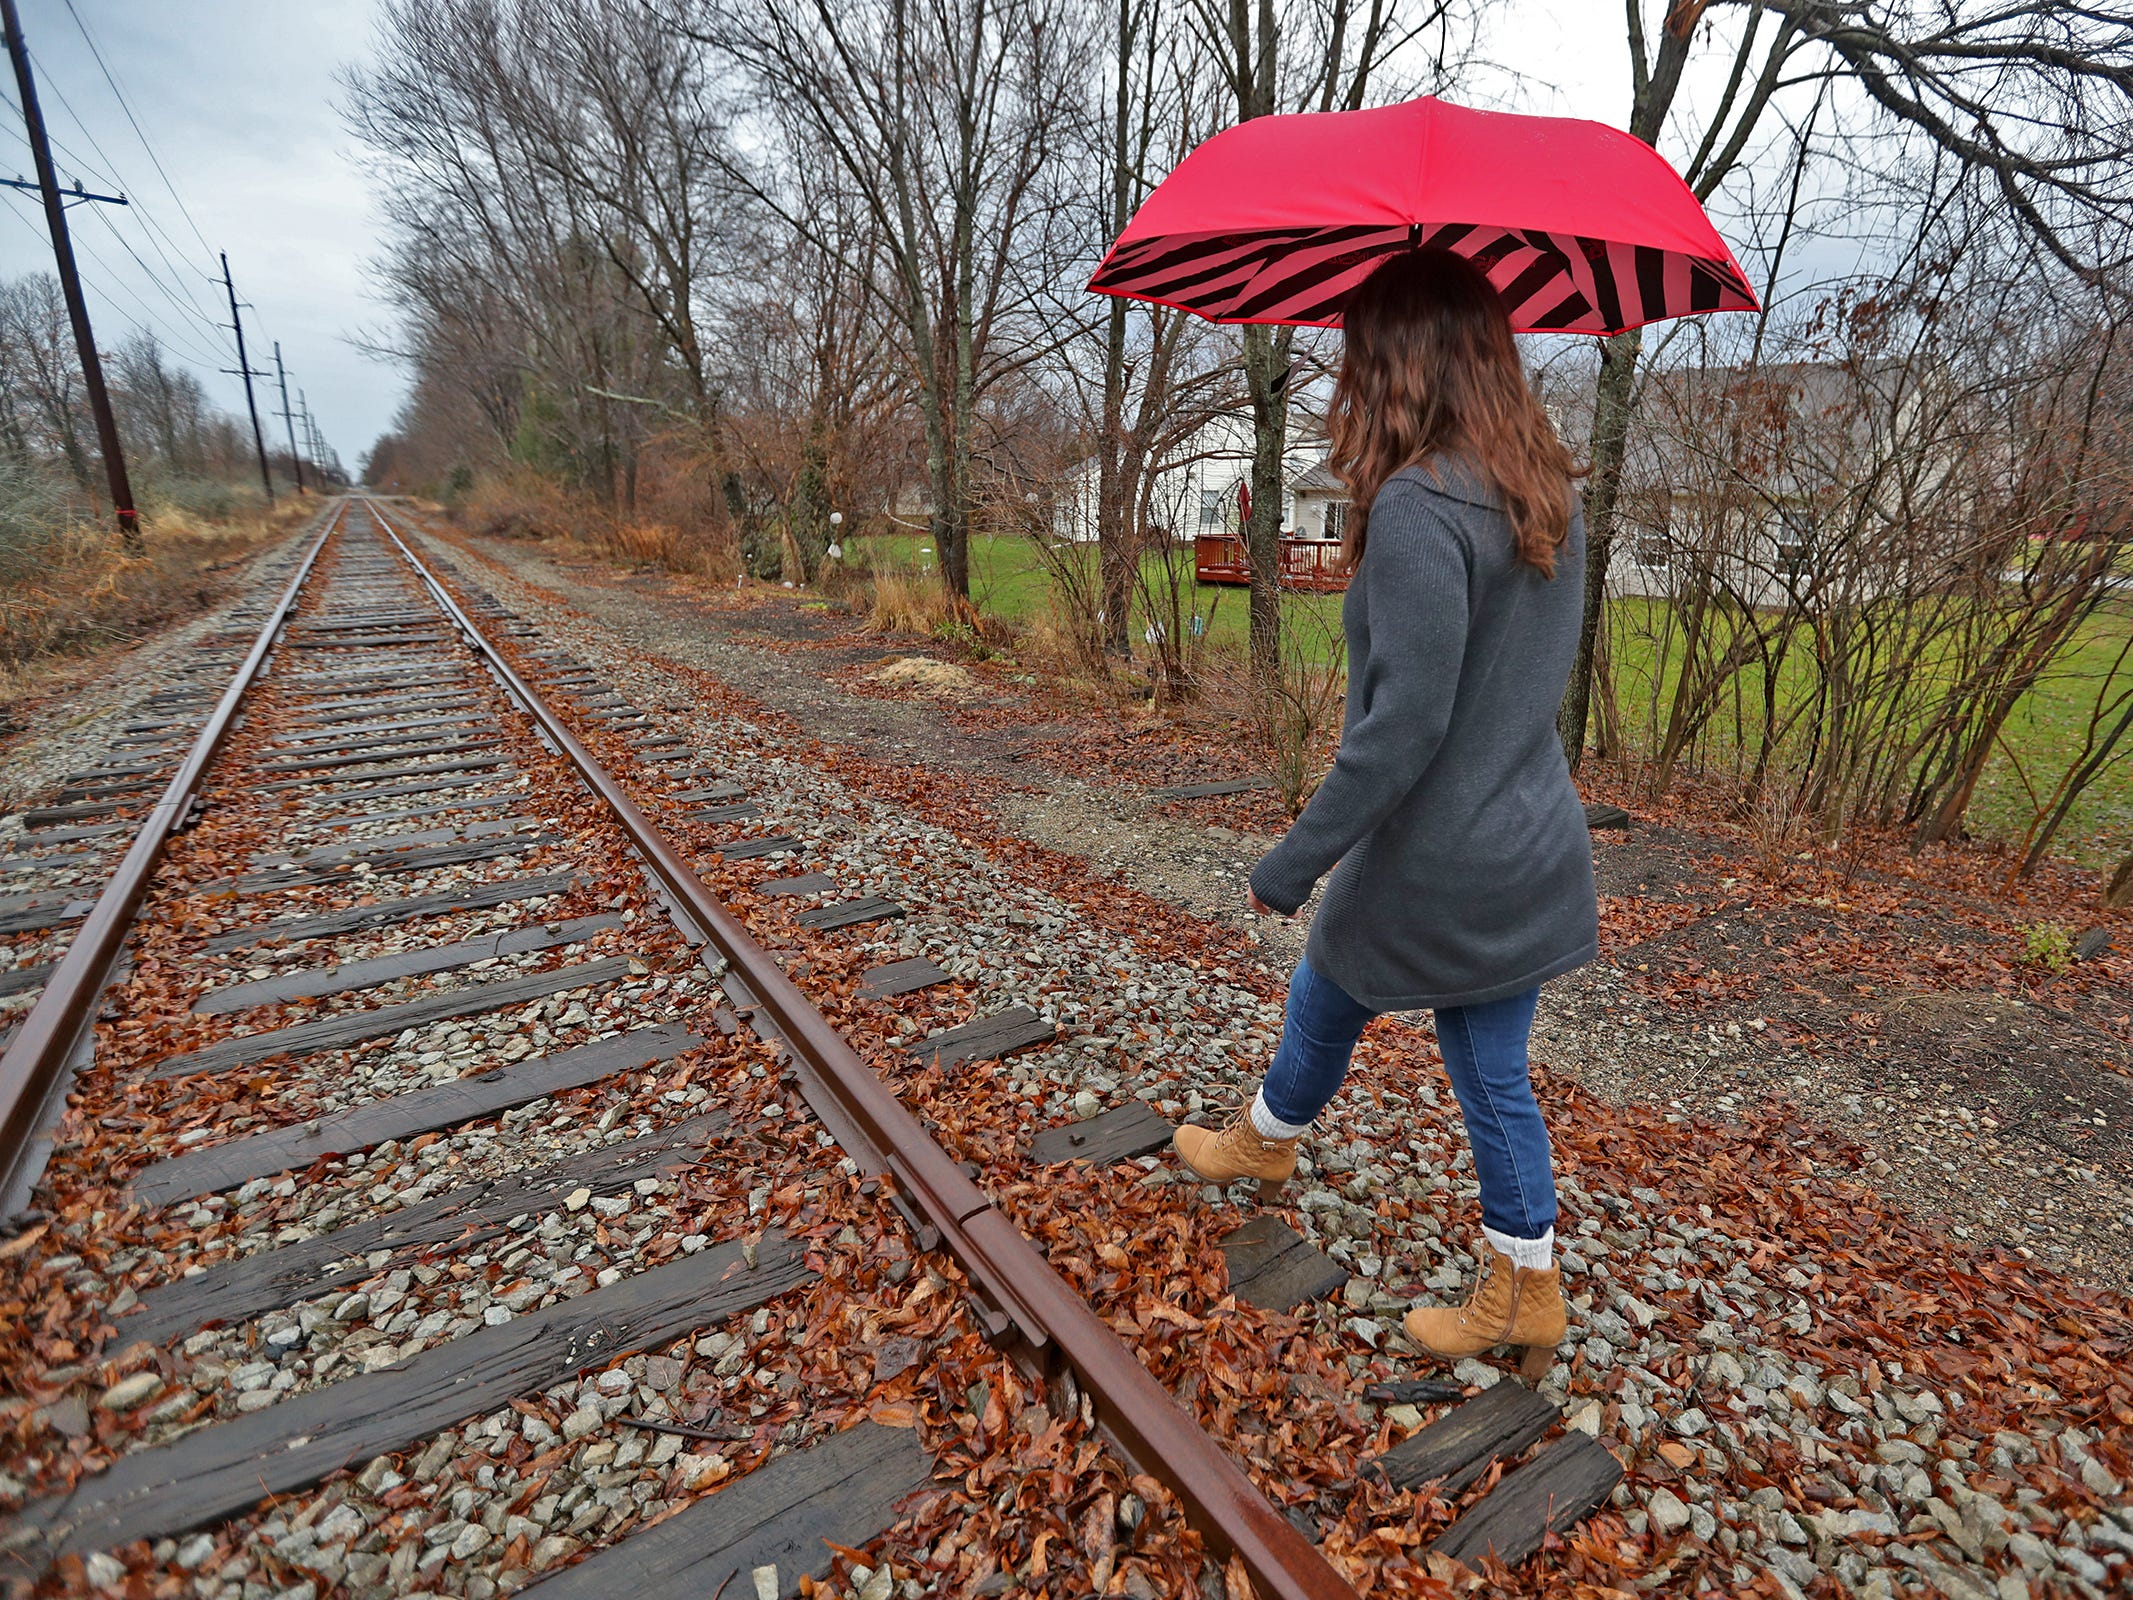 Marcy Kellar walks along the Nickel Plate railroad tracks behind her Fishers home, Monday, Dec. 31, 2018.  She worries about her loss of privacy and the loss of her garden that fills her with joy, when a trail is built along the track.